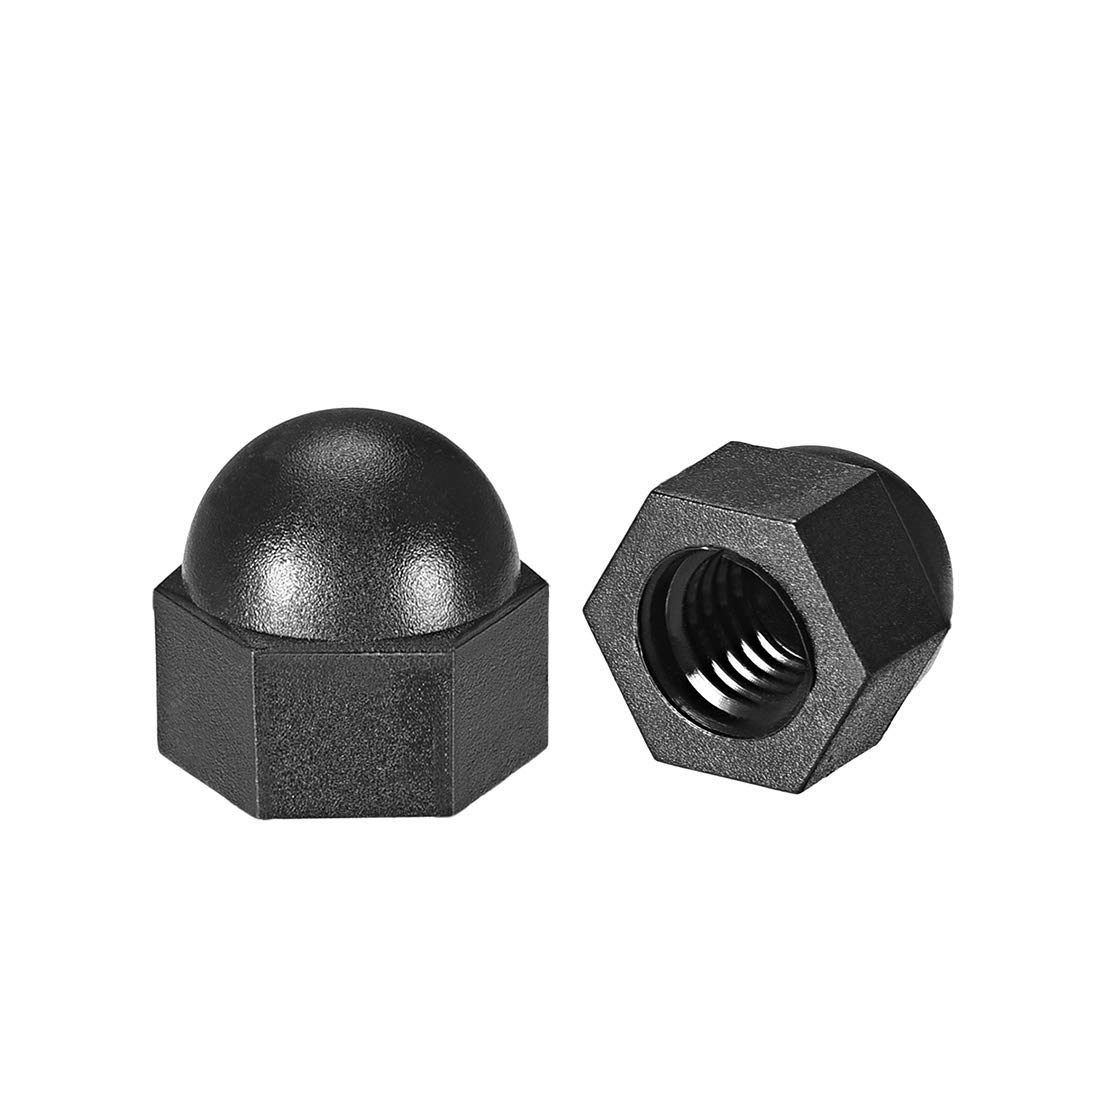 M8 Nut Hexagon Nuts with Dome Head for Screws Screws Bolts Nylon Black 30 Pieces